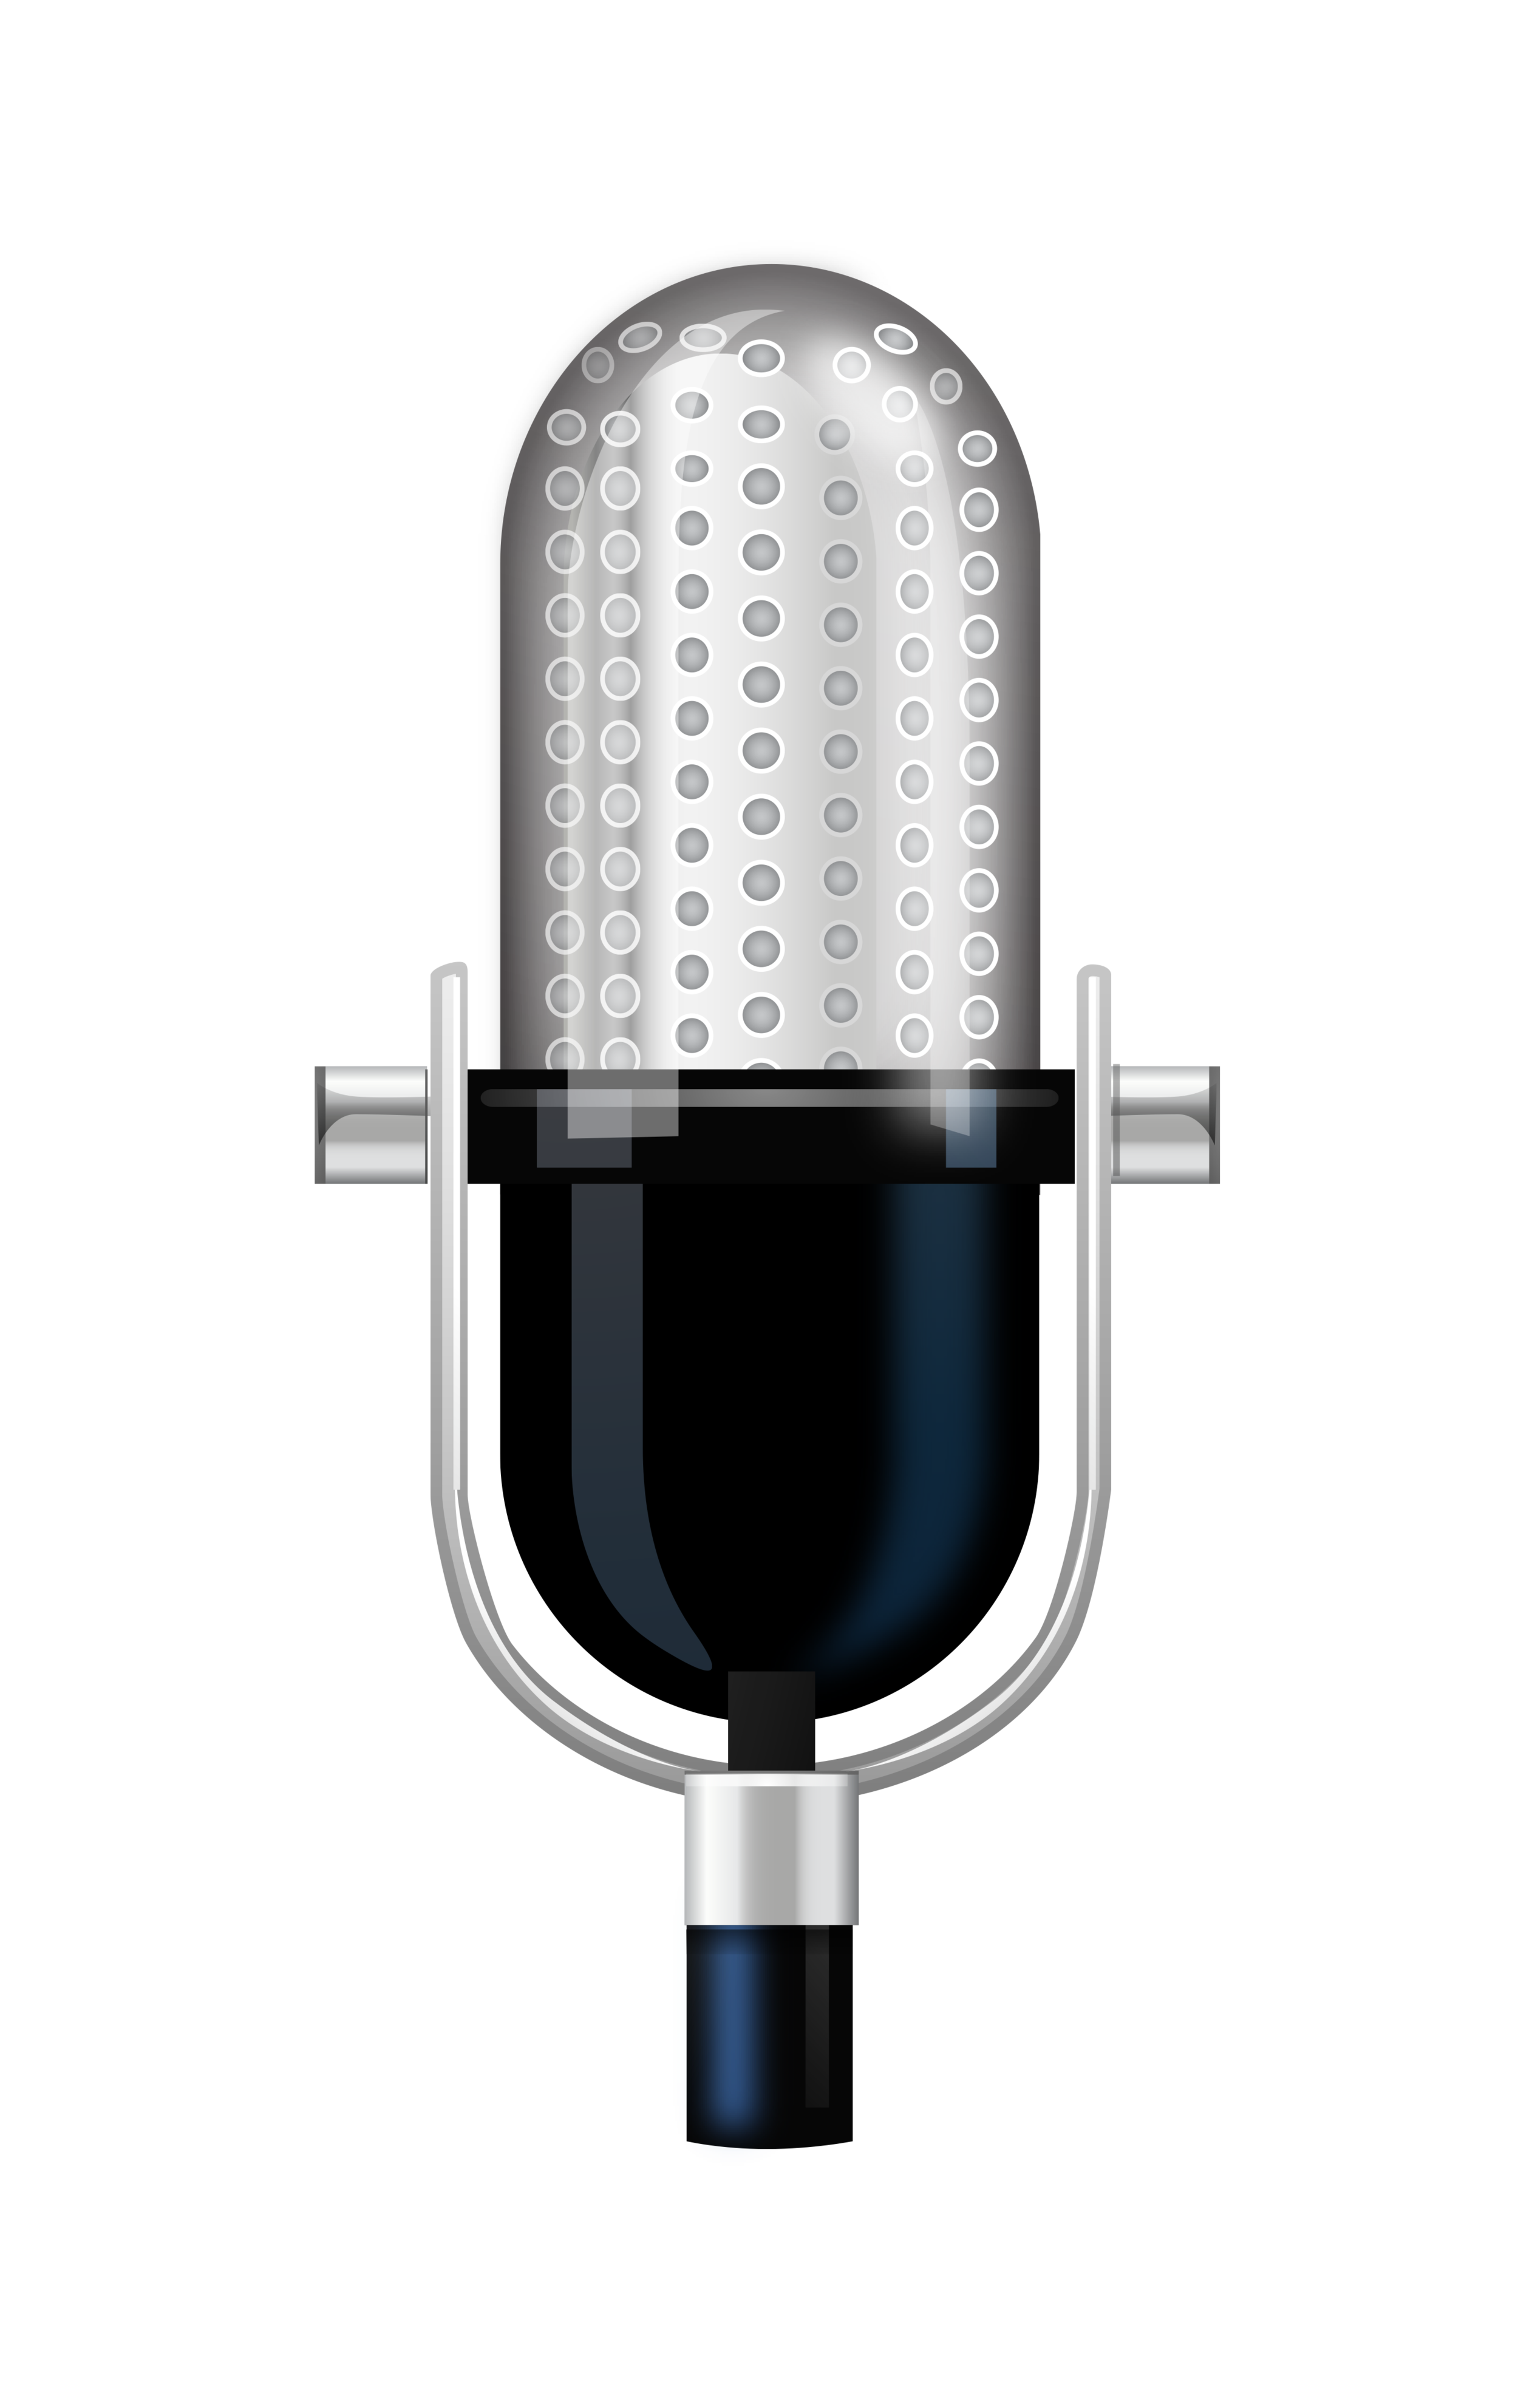 microphone-audio_zyMq_LId_L.png